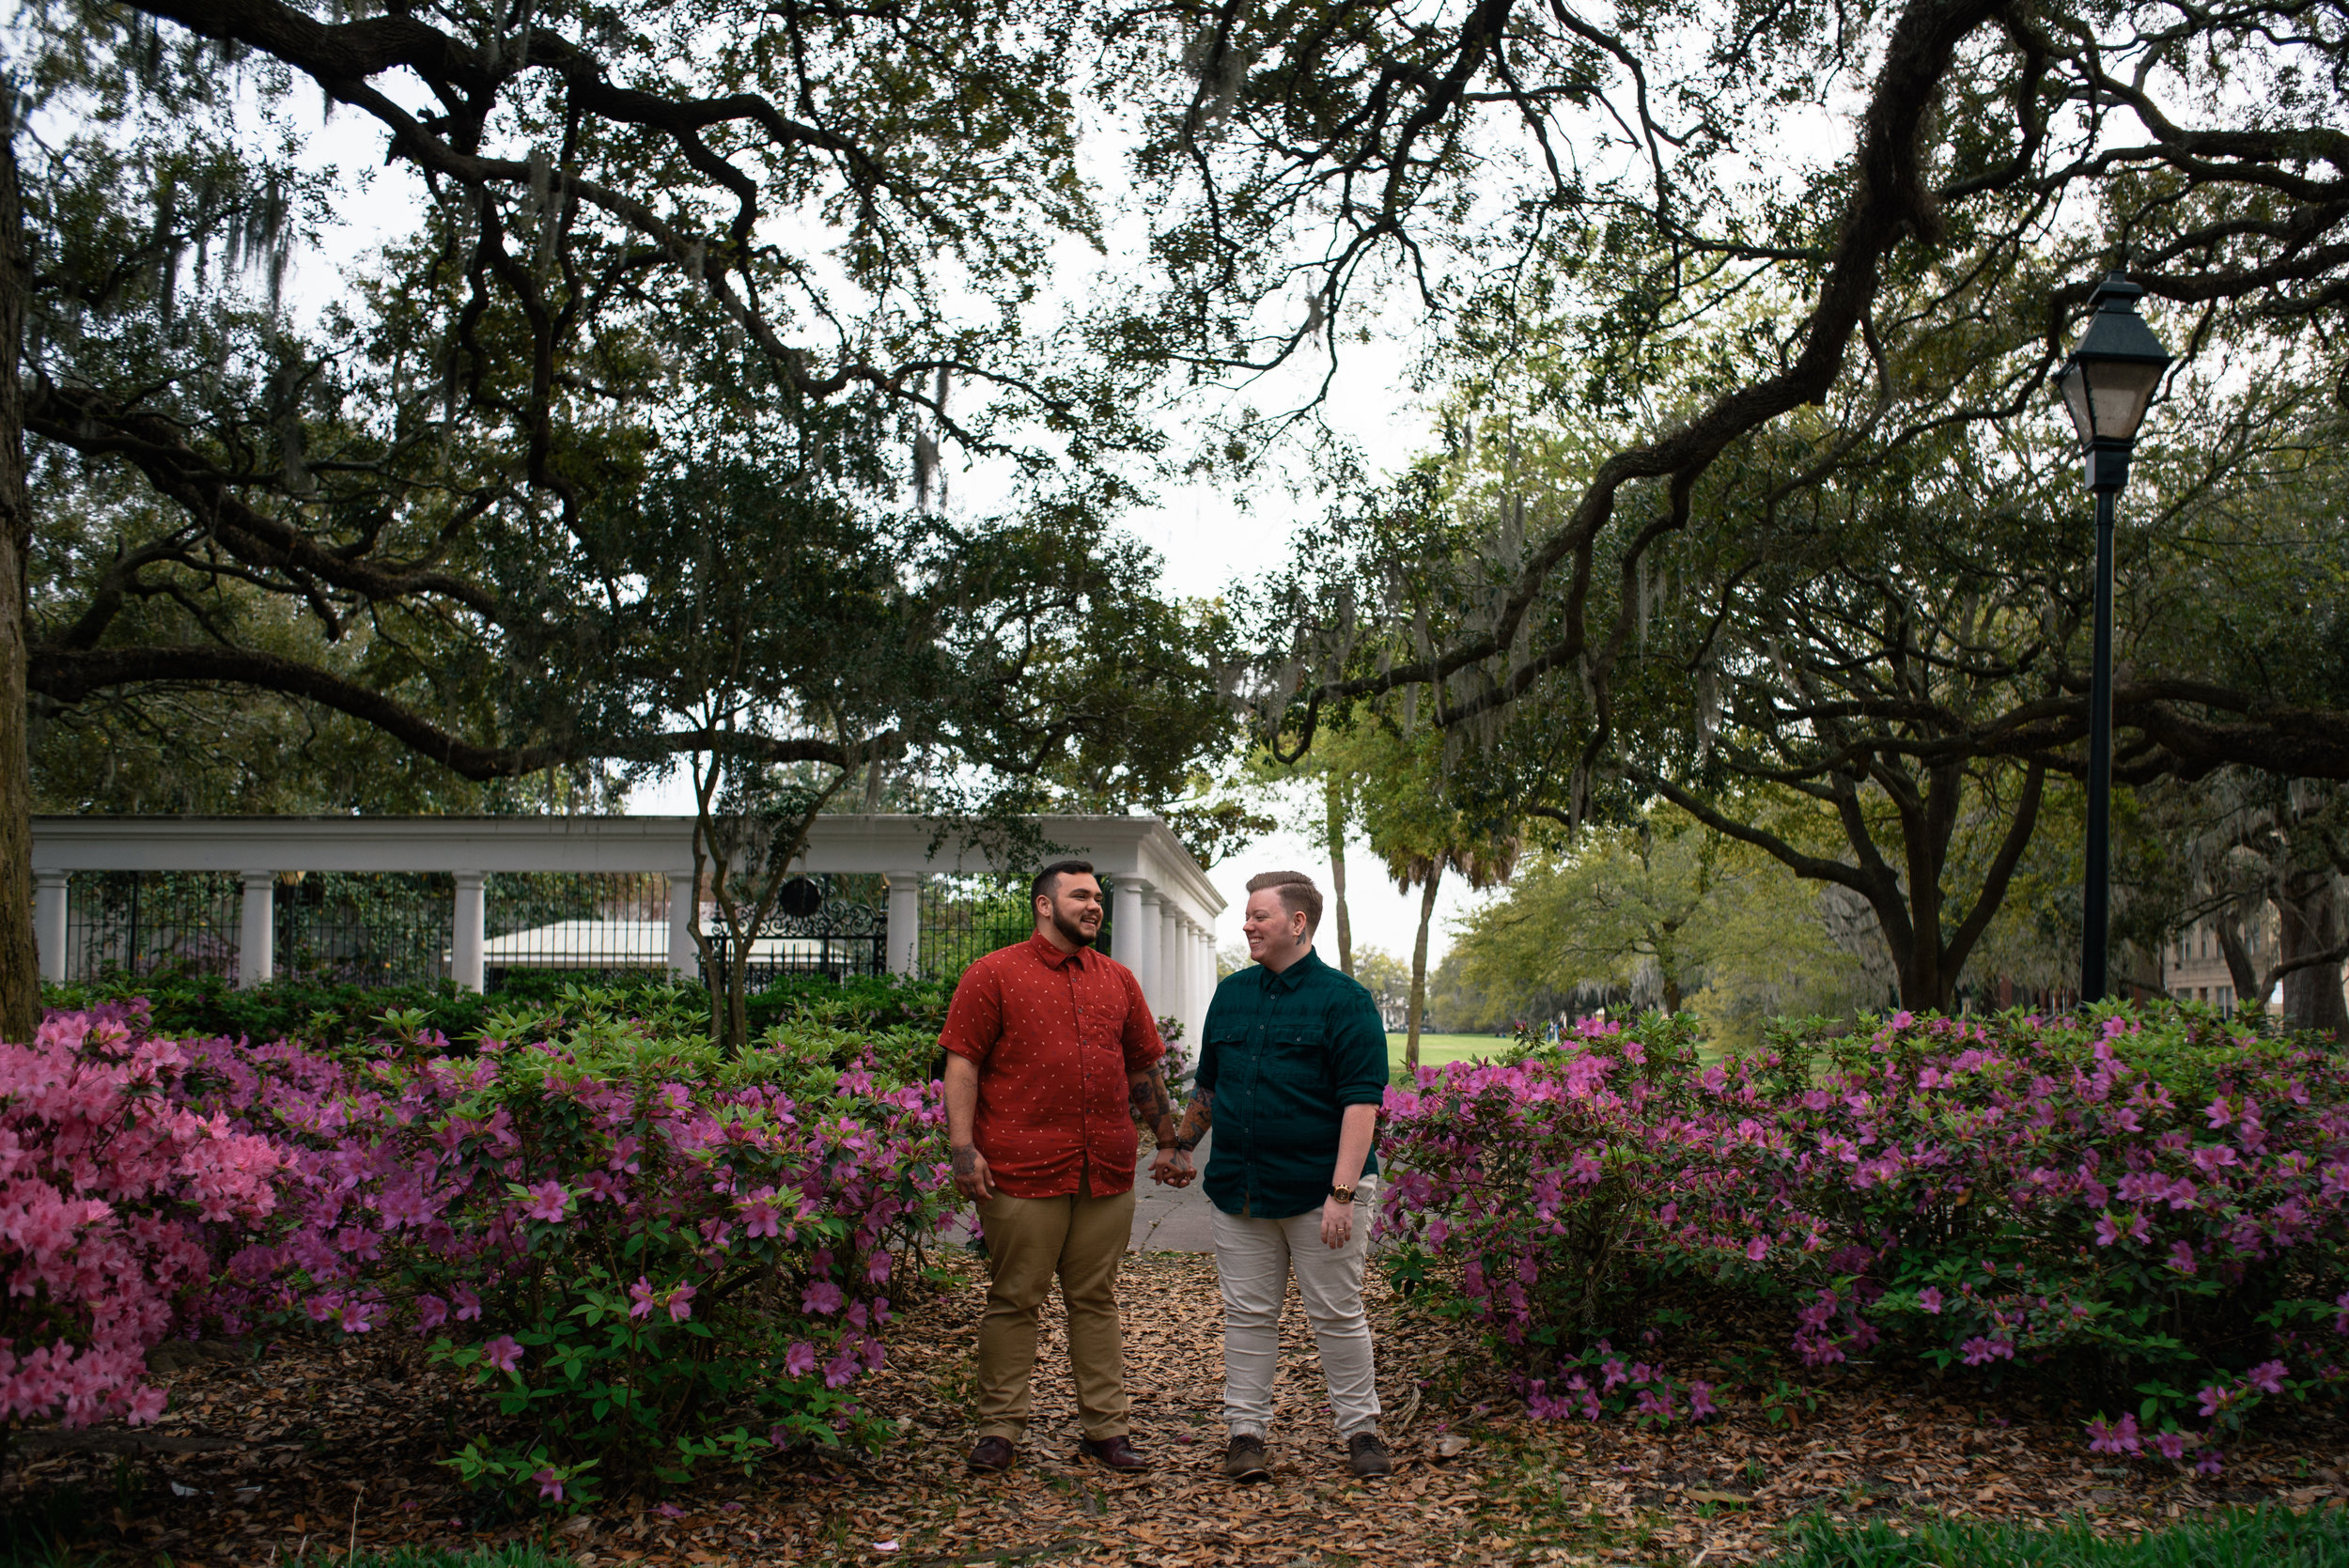 nick-and-liam-savannah-georgia-engagement-meg-hill-photo (12 of 118).jpg